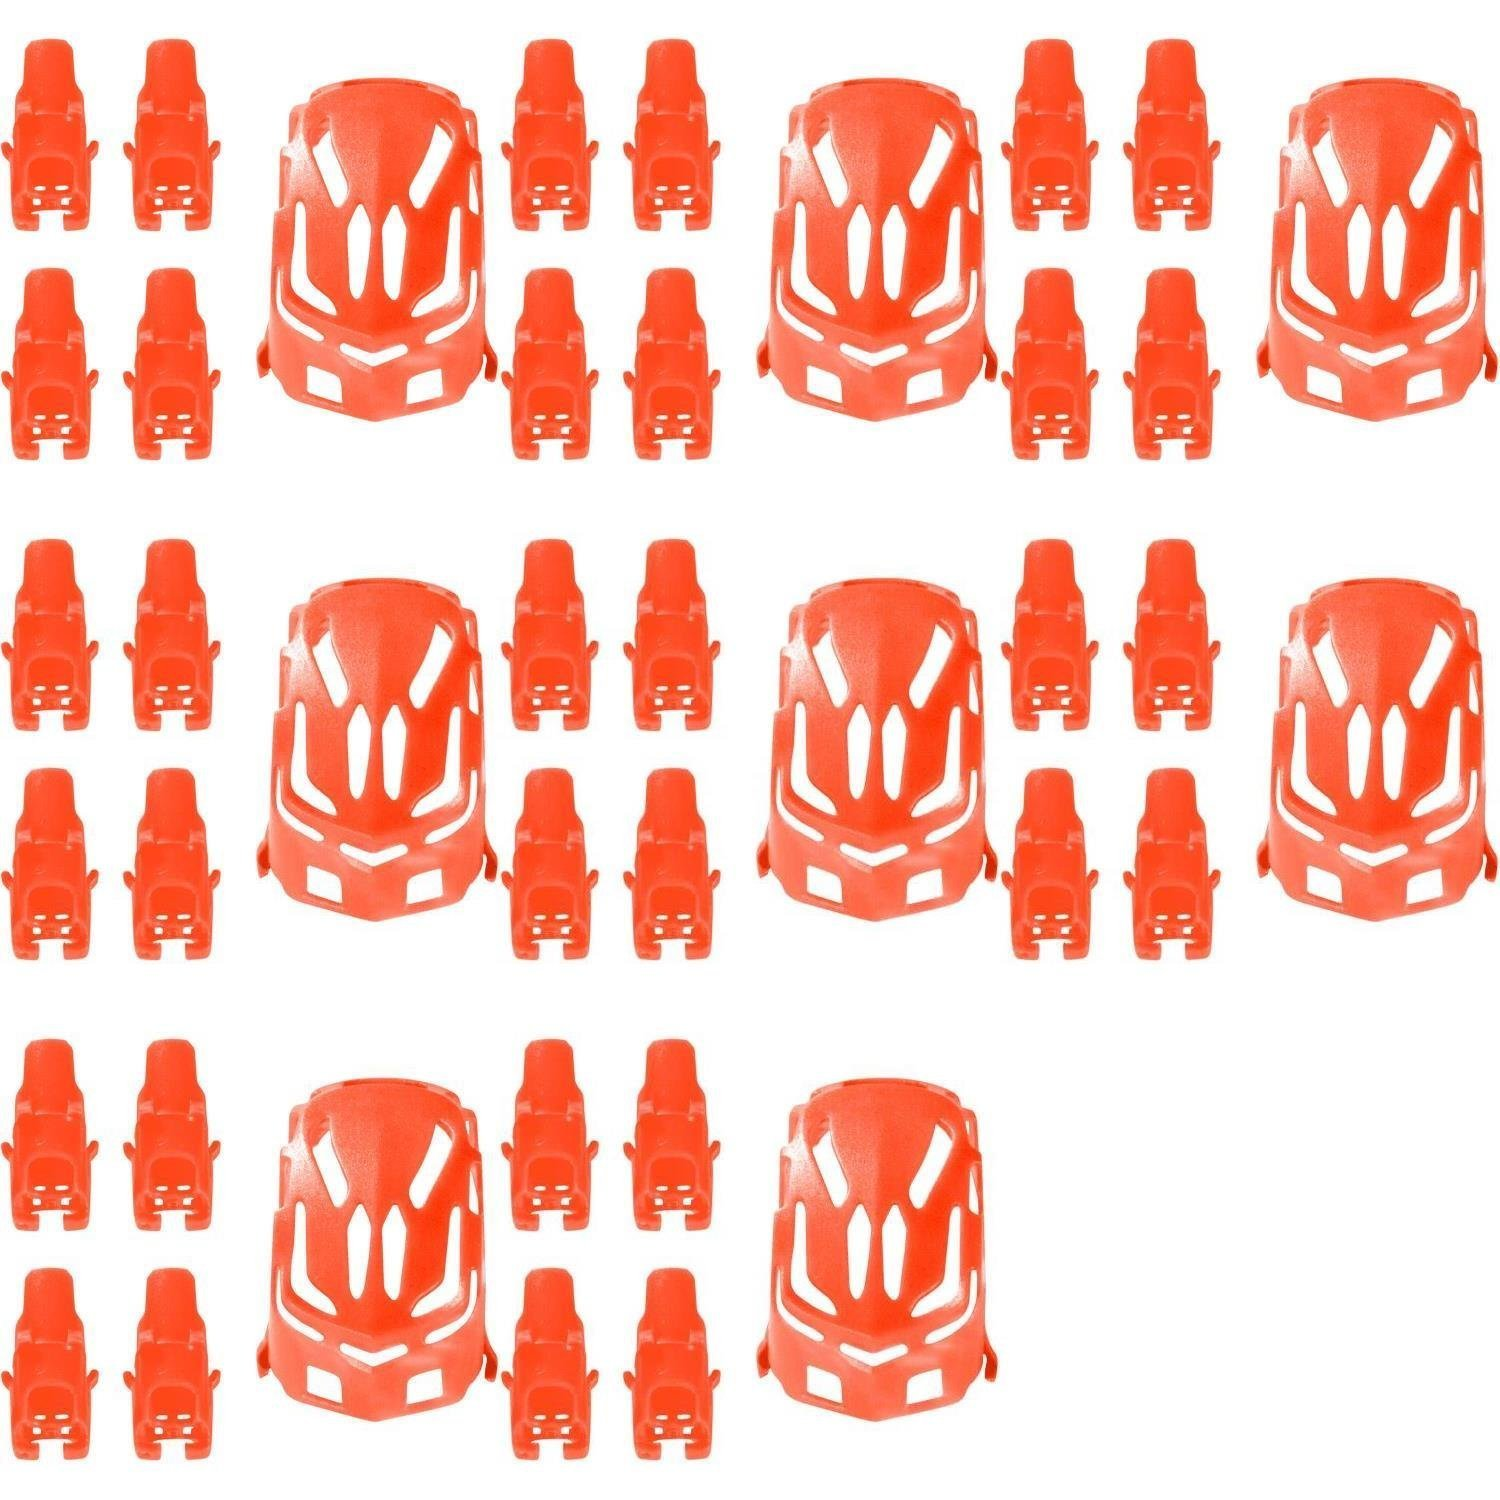 Frog Studio Home 8 x Quantity of Estes Proto-X Nano Body Shell H111-01 Red Quadcopter Frame w/Motor Supports - Fast Free Shipping from Orlando, Florida USA